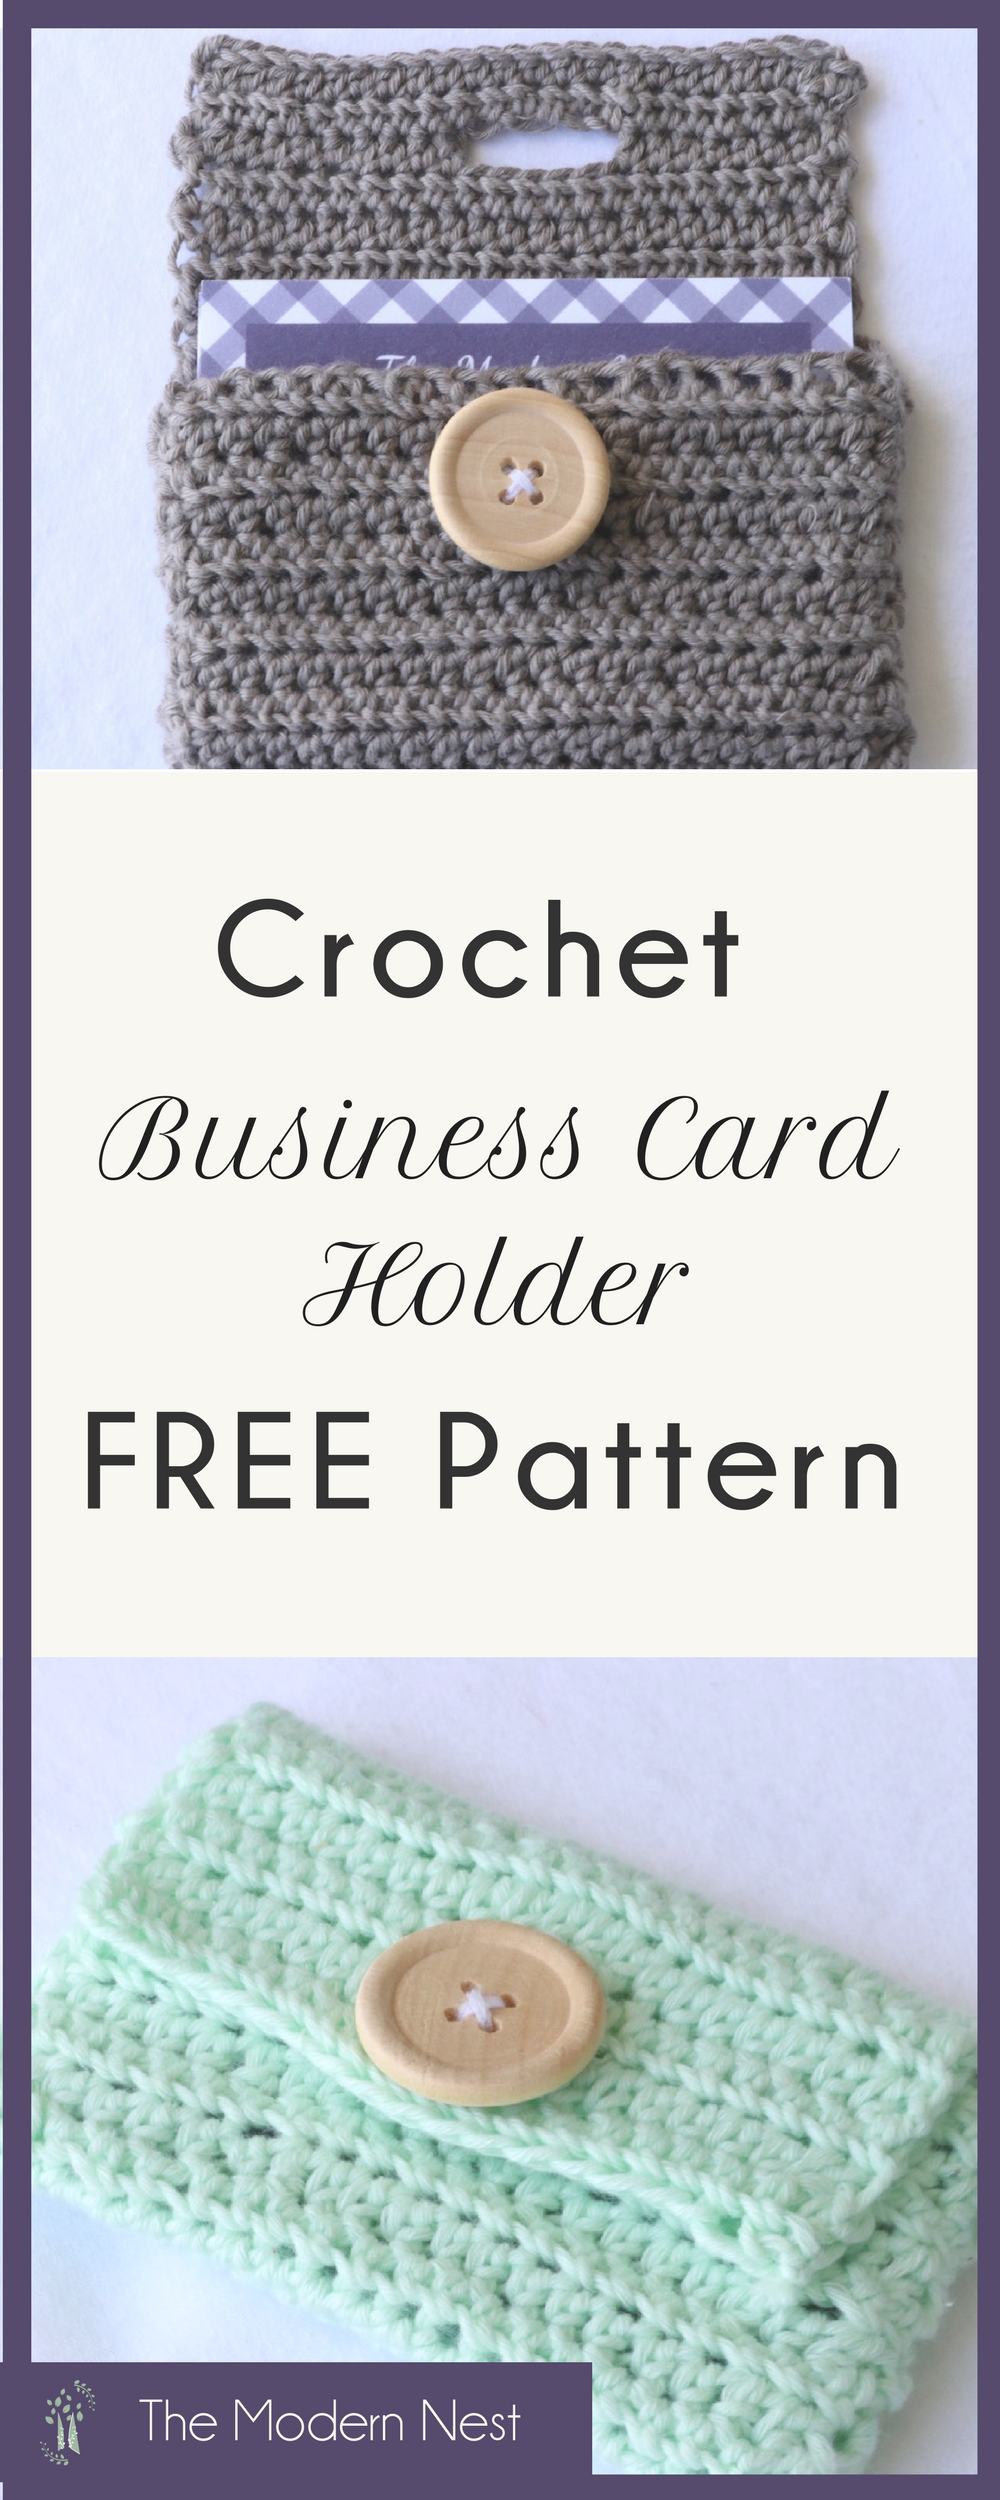 Business Card Holder Crochet Pattern | Free business cards, Business ...